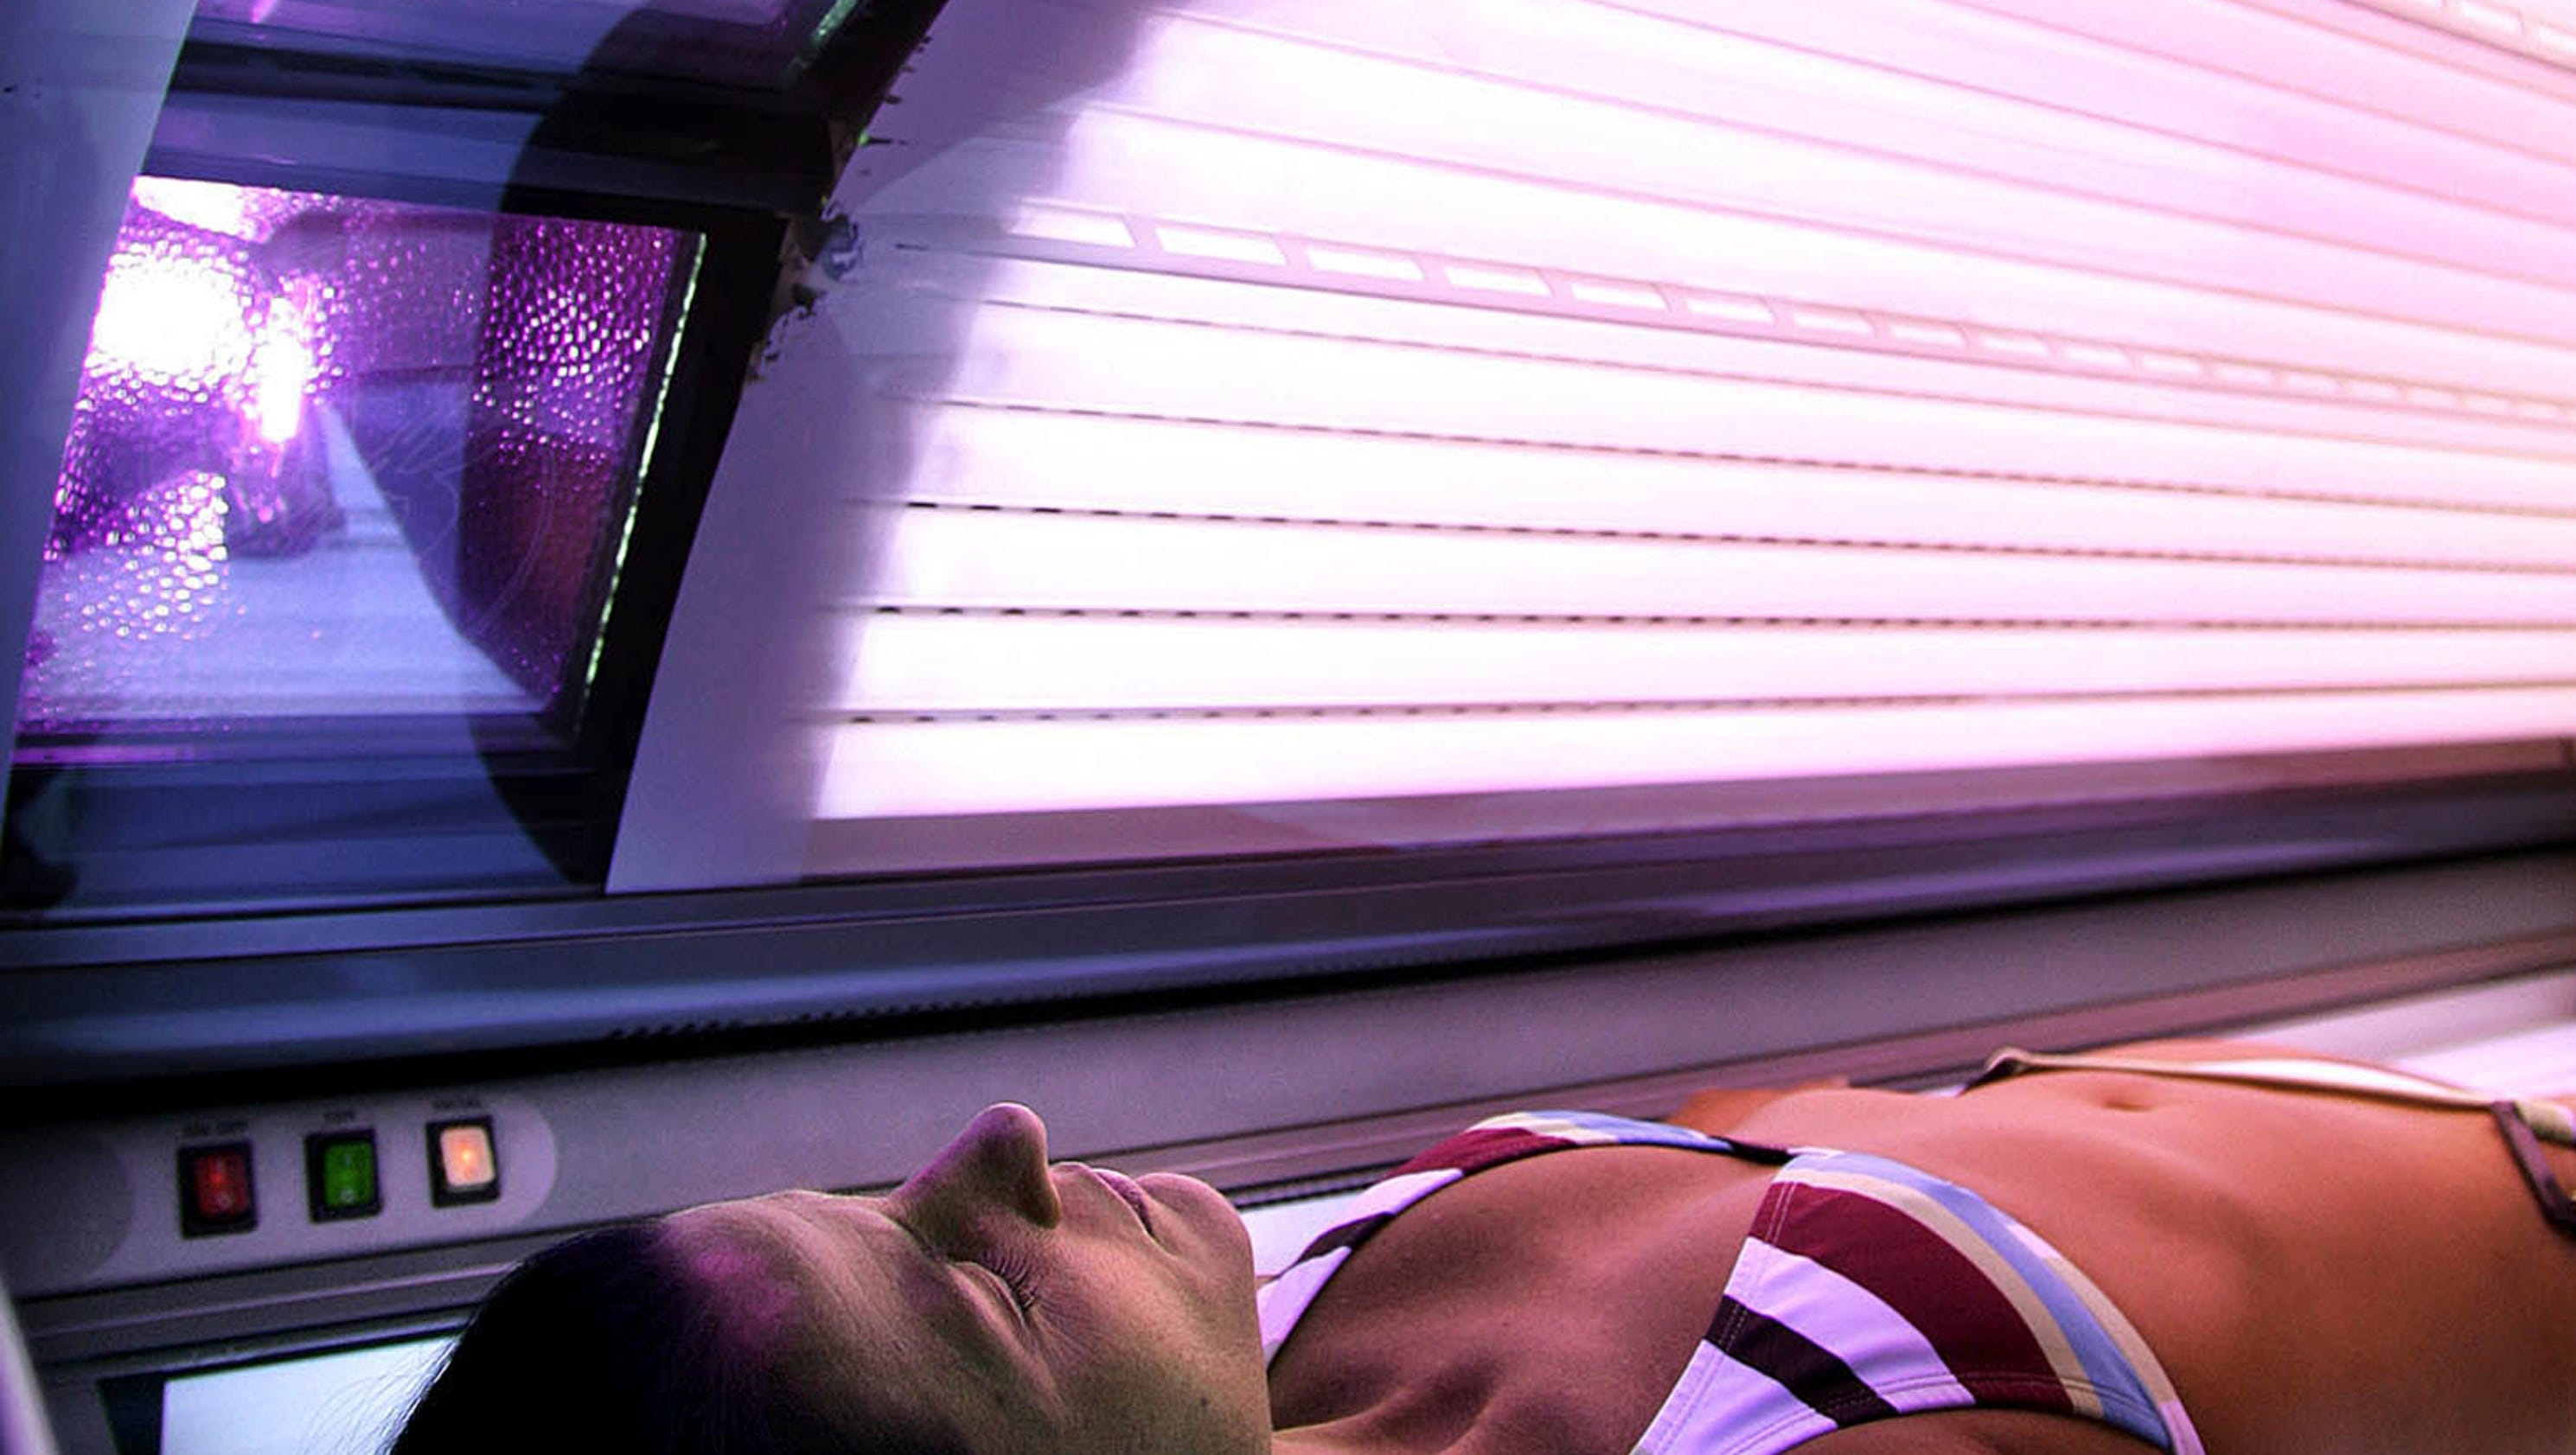 commercial of sale future bed for beds the tanning